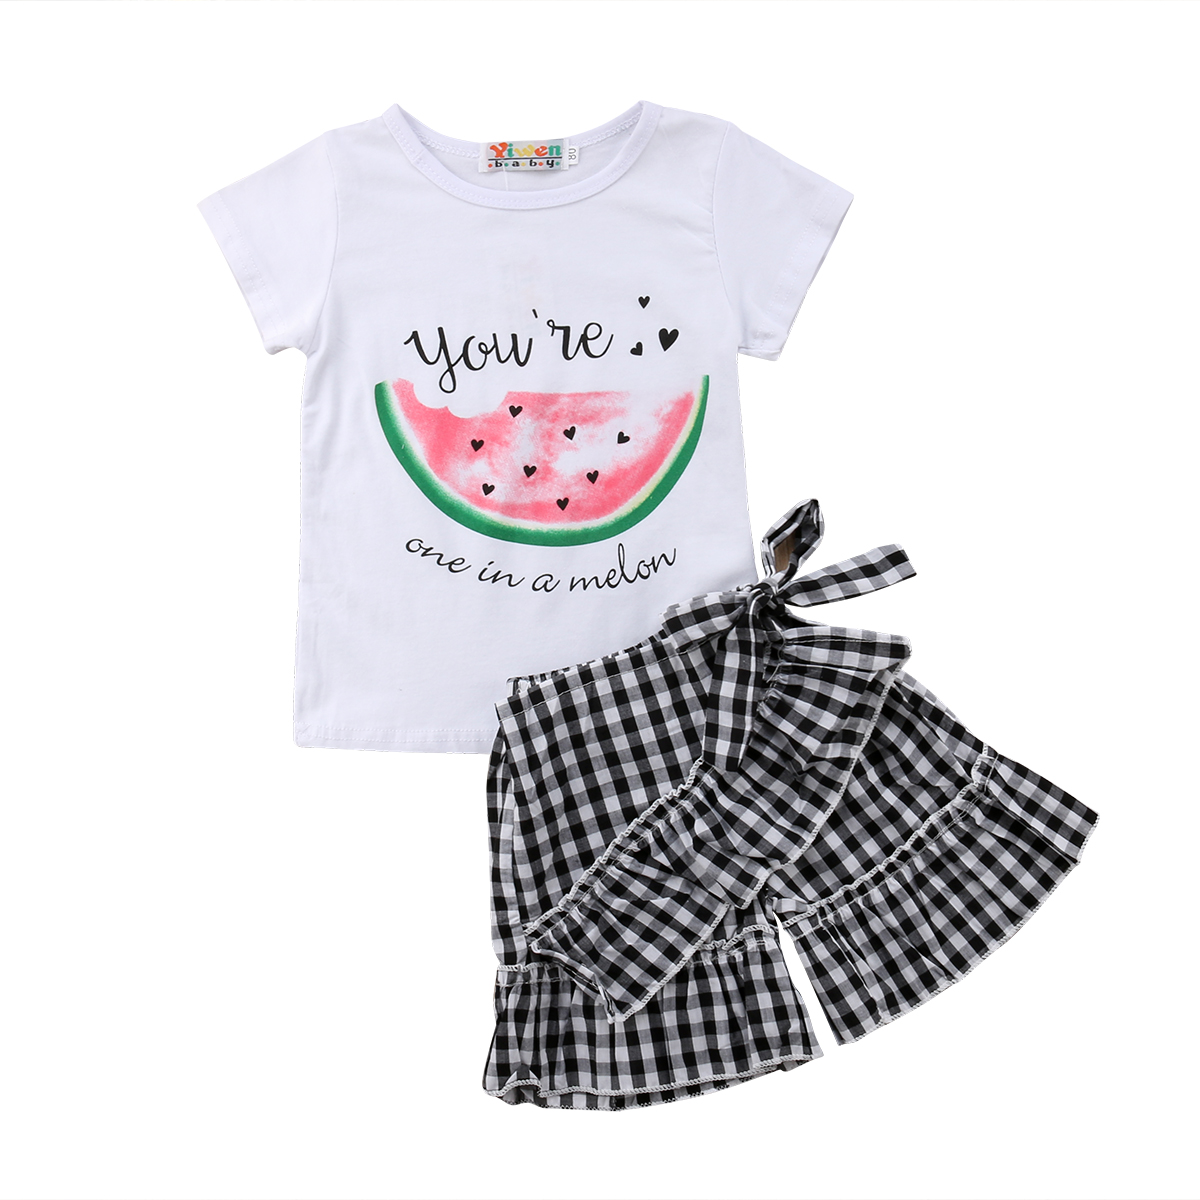 Toddler Kids Baby Girls Clothing T-shirt Tops Beach Shorts Plaid Cotton Summer Outfits Clothes 2PCS Set Girl 1-6T